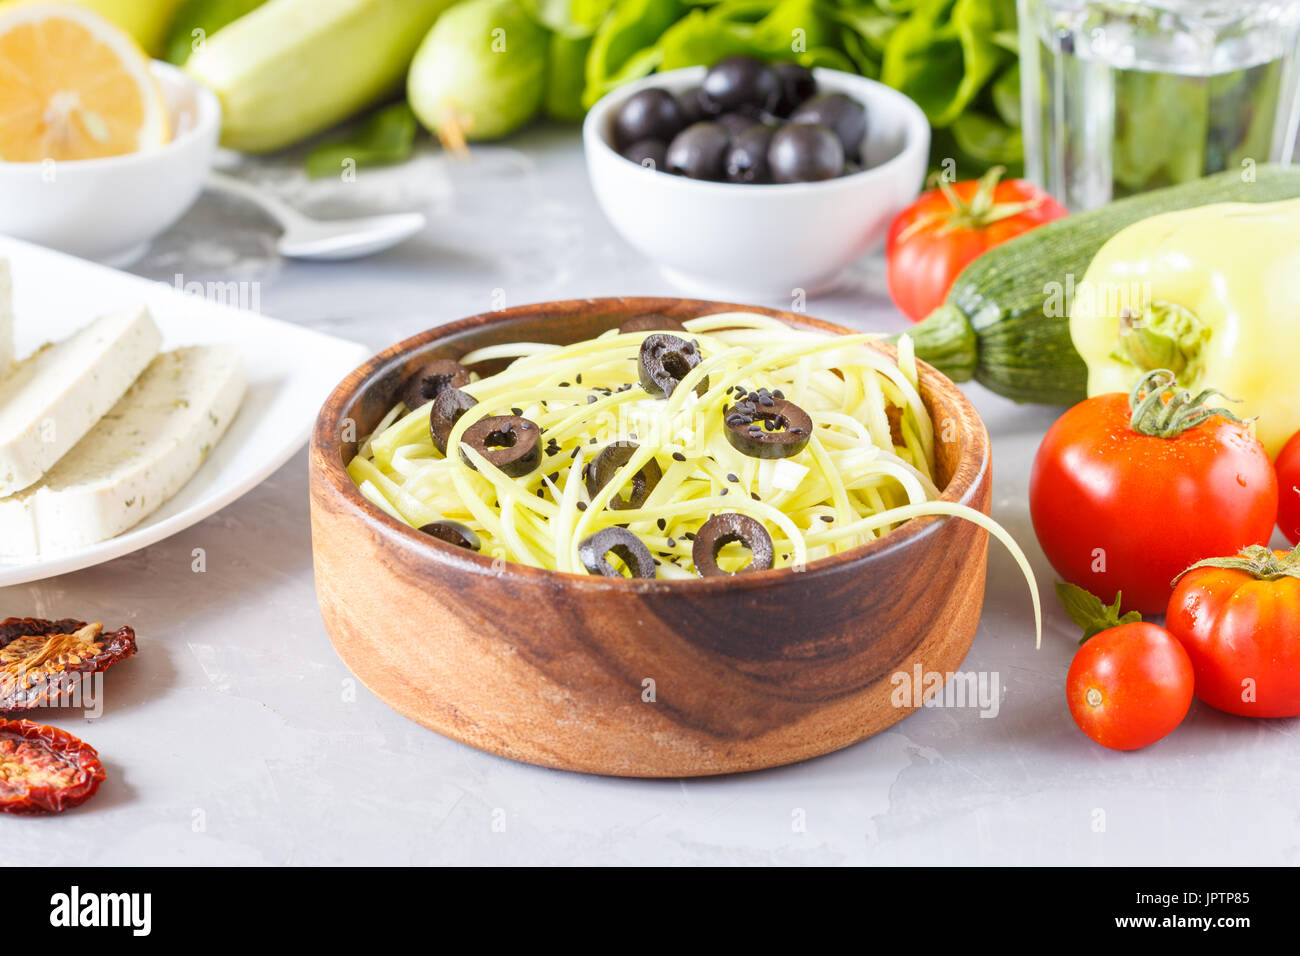 Zucchini pasta with olives and tofu. Vegetarian lunch of vegetables and tofu. Love for a healthy vegan food concept. - Stock Image